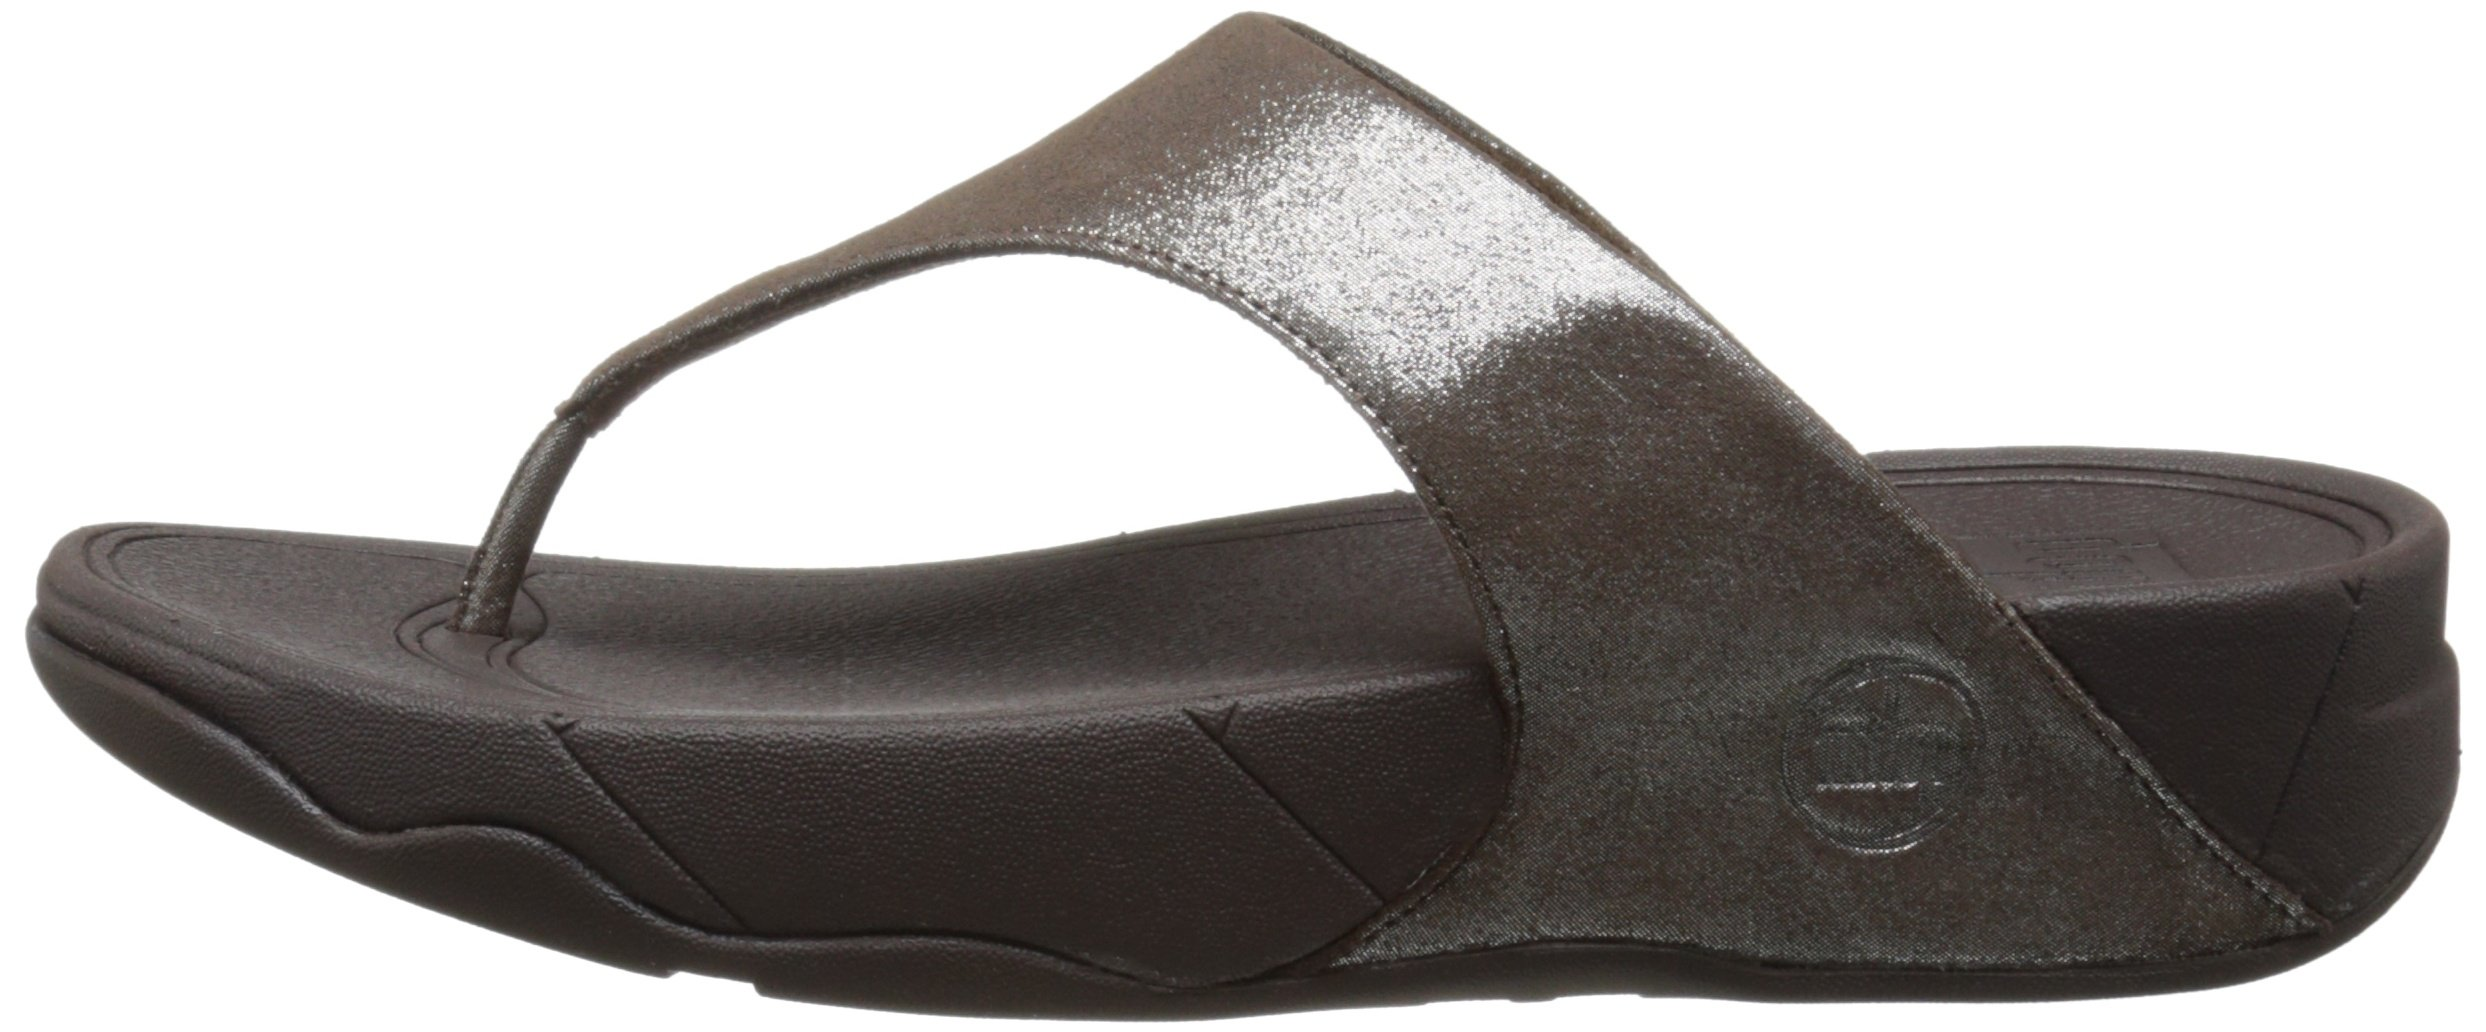 FitFlop Women's Lulu Shimmersuede Flip Flop, Bronze, 9 M US by FitFlop (Image #5)